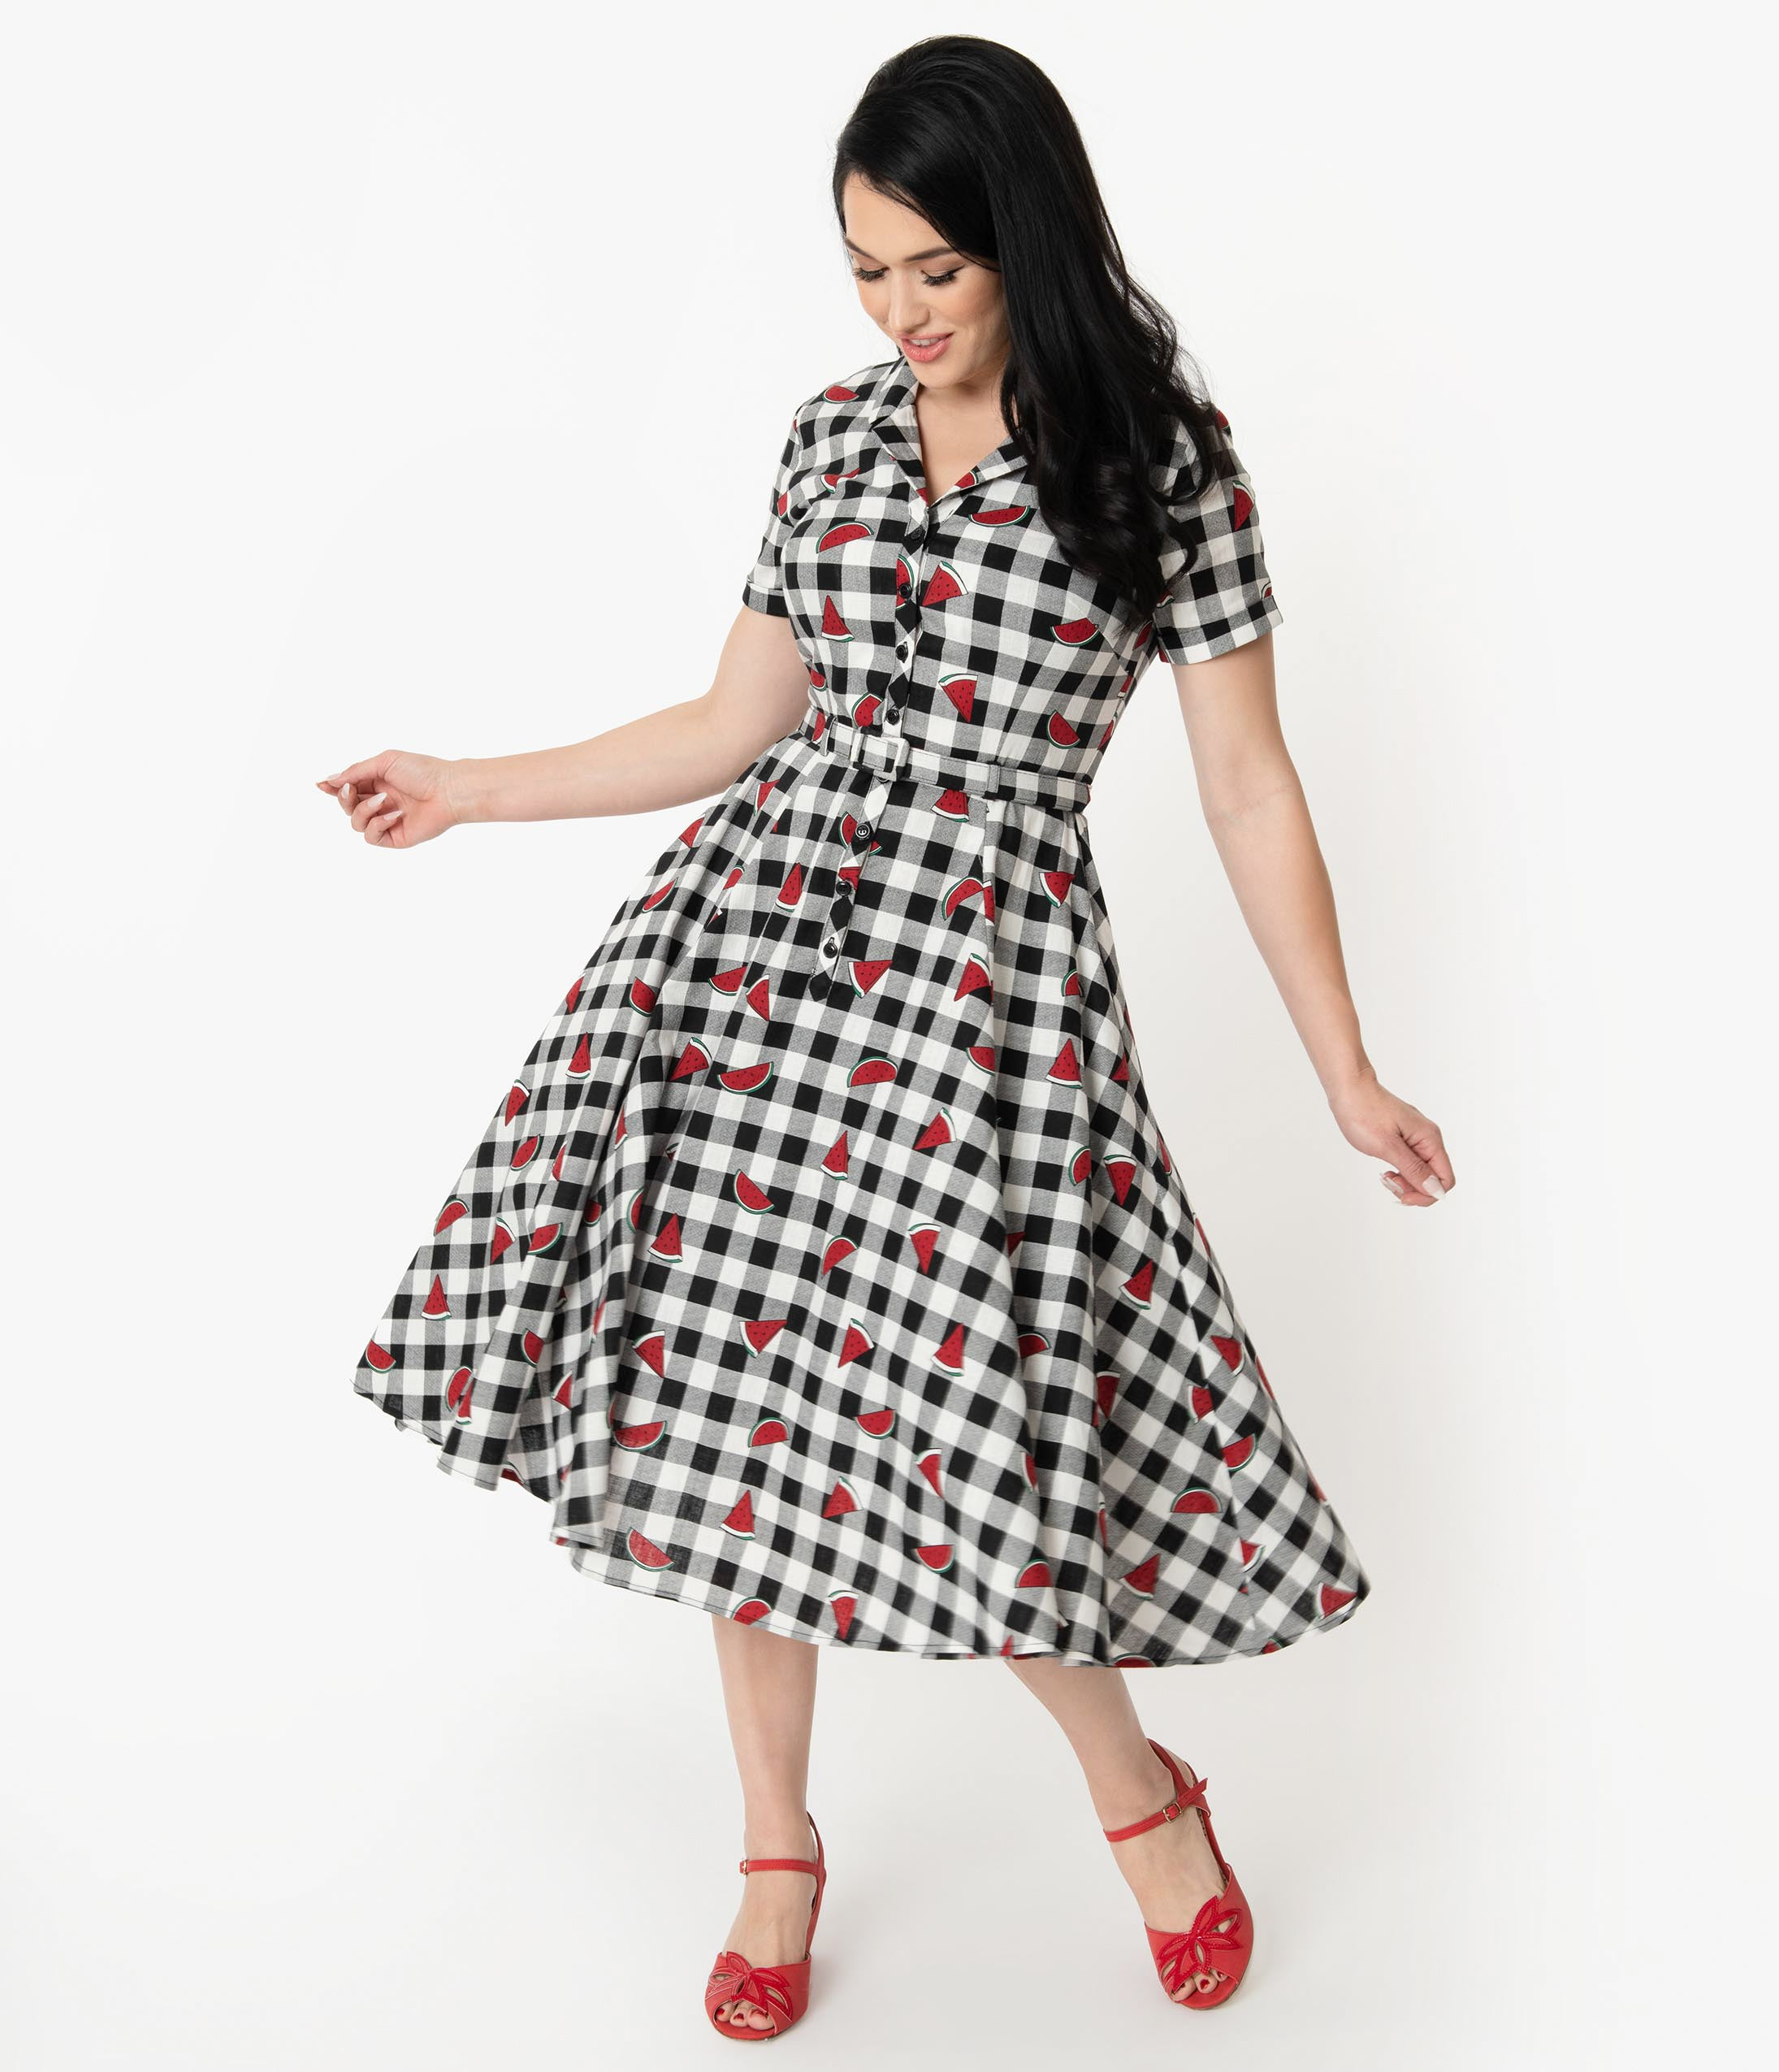 Fifties Dresses : 1950s Style Swing to Wiggle Dresses Collectif 1950S Black  White Gingham Watermelon Print Caterina Swing Dress $78.00 AT vintagedancer.com